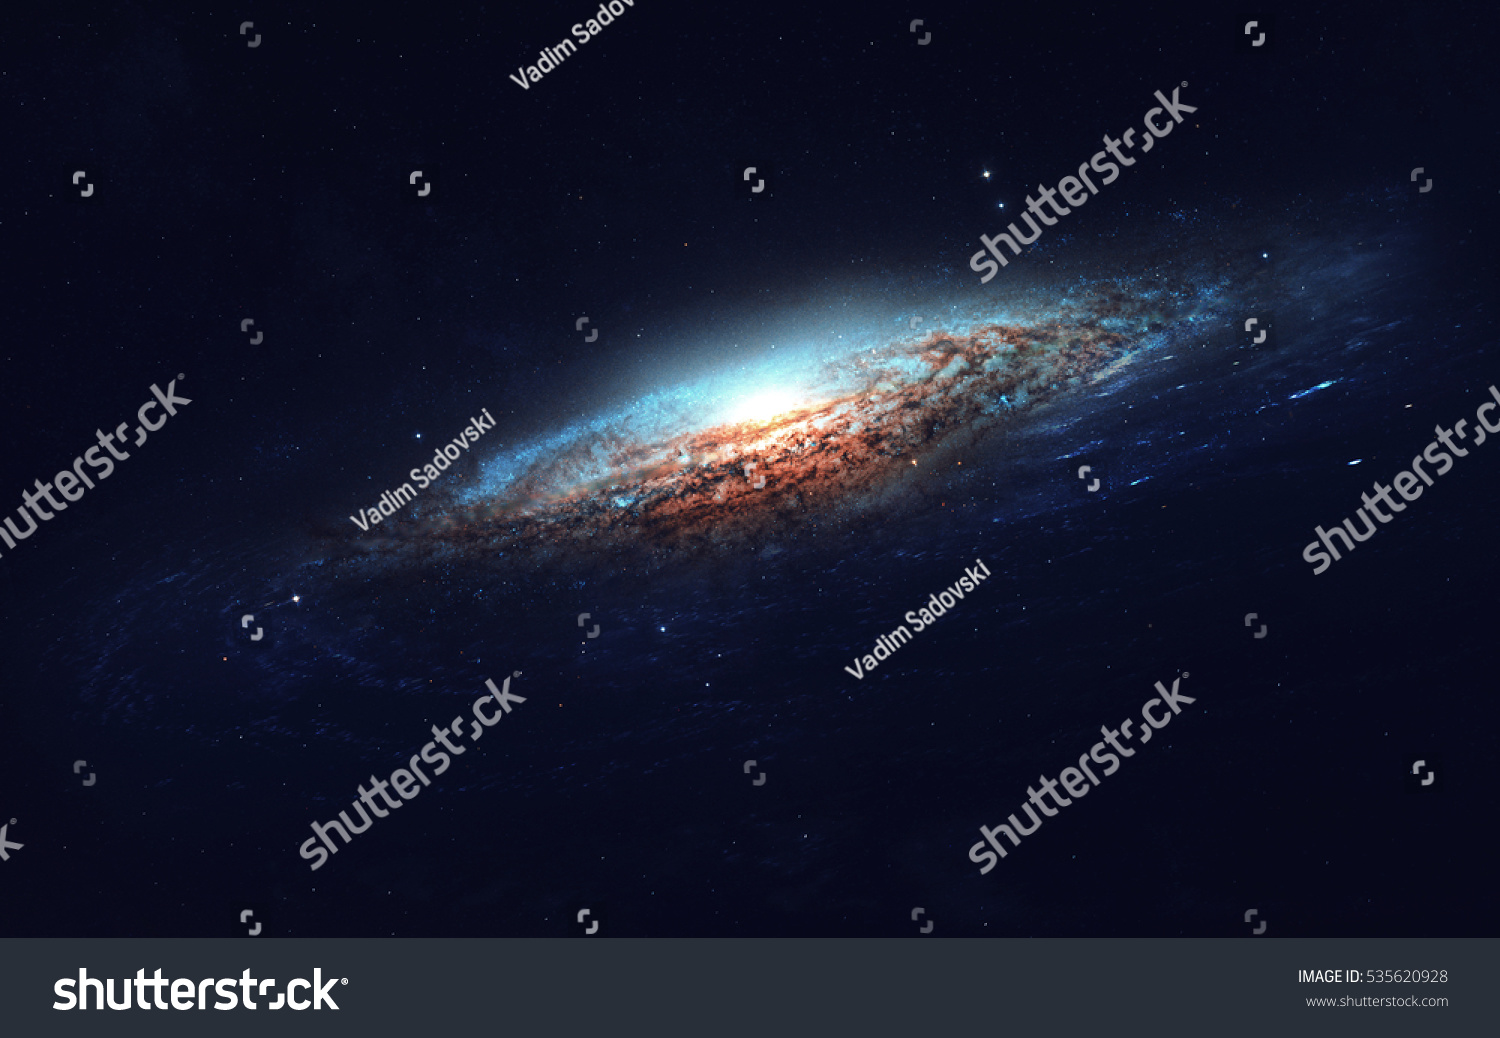 planets and galaxies and nebulas - photo #11